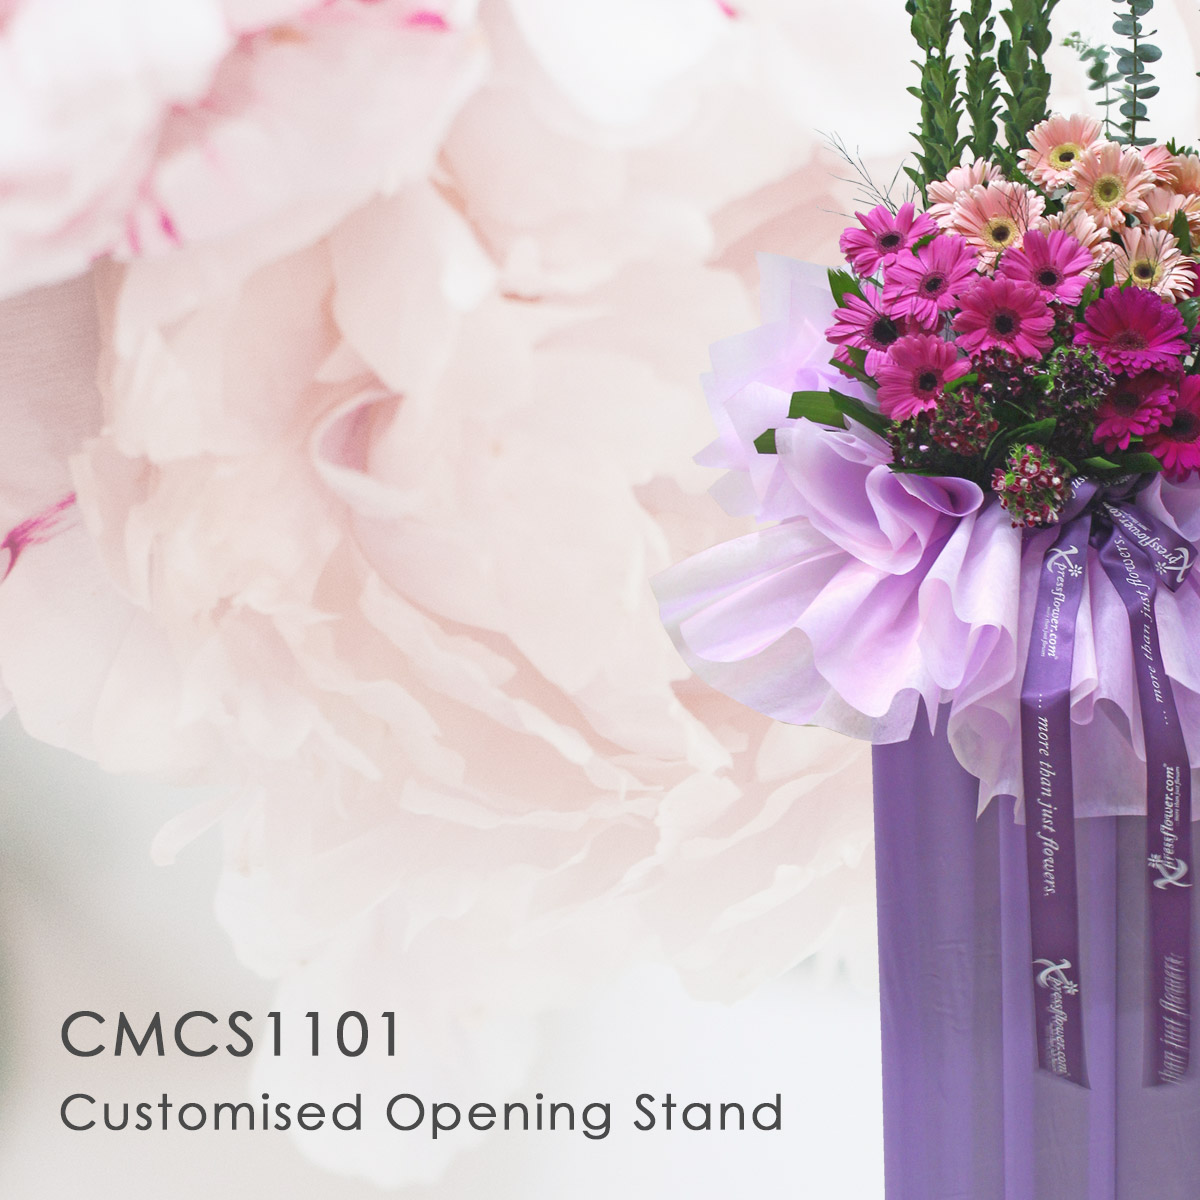 CMCS1101_Customised-Opening-Stand_1200